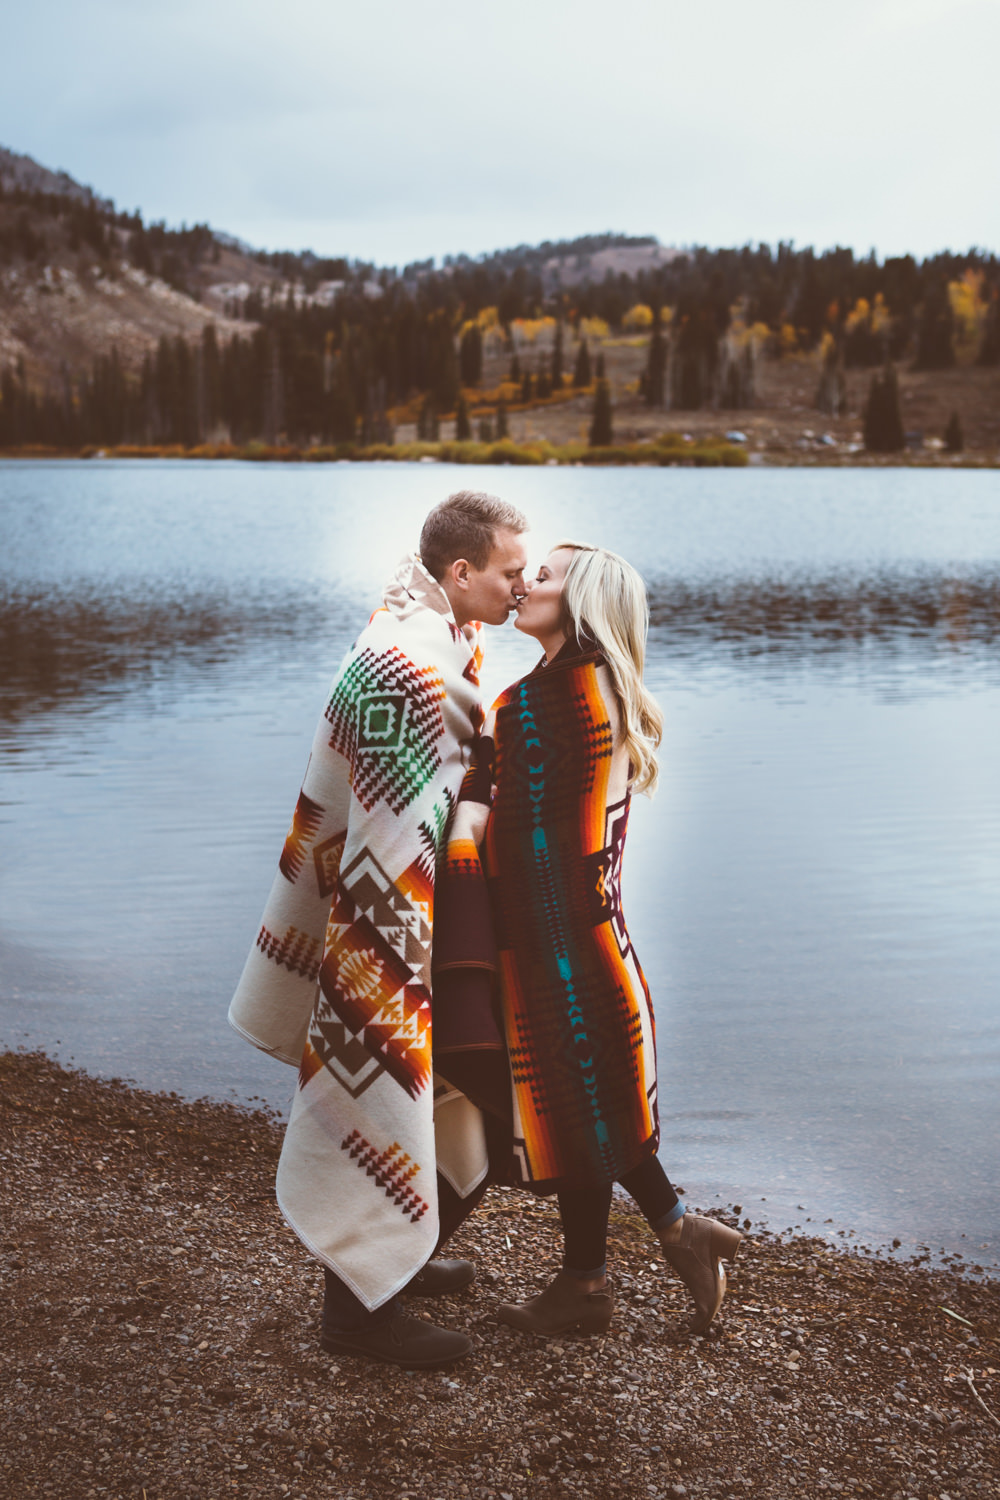 A couple kisses by a lake, wrapped in blankets.